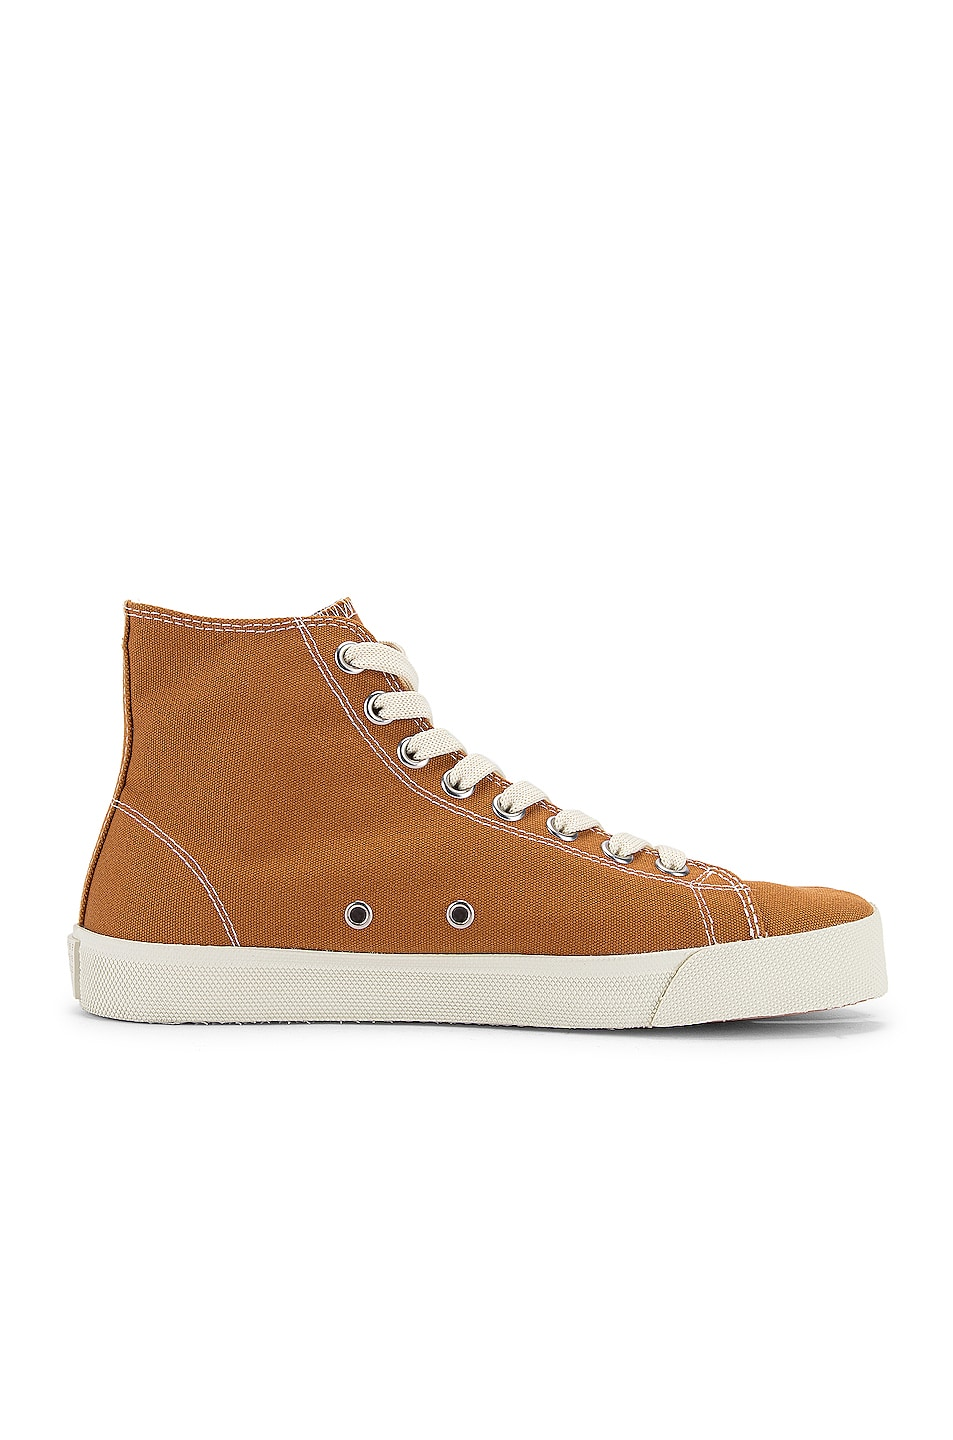 Image 7 of Maison Margiela Tabi High Top Canvas Sneakers in Nude